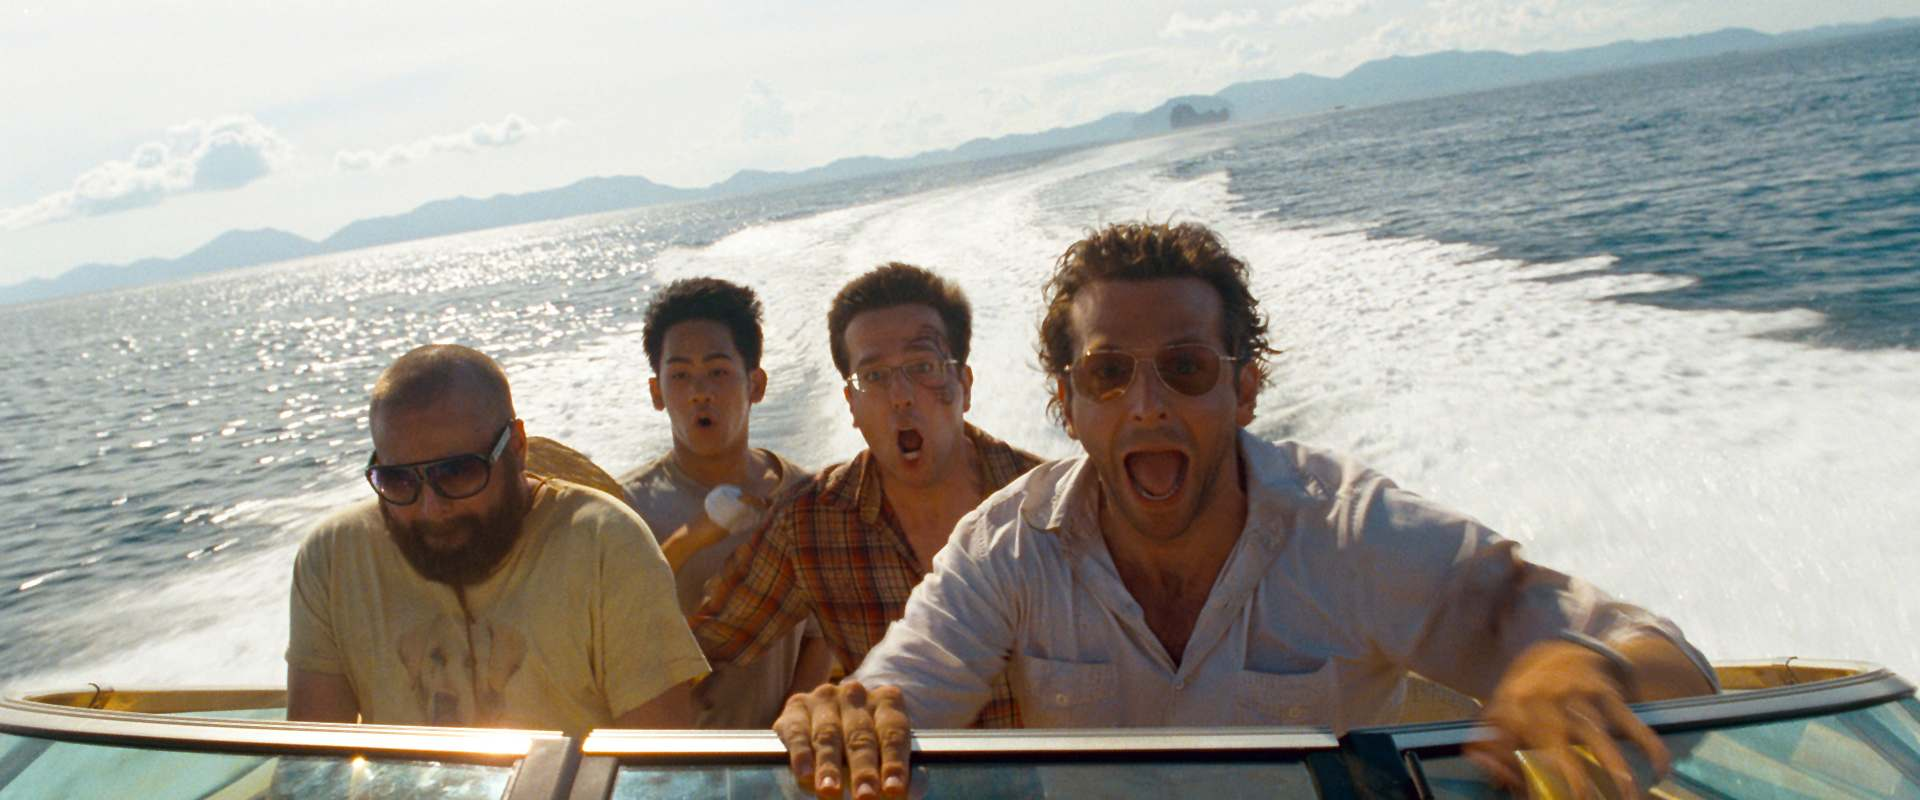 The Hangover Part II background 2